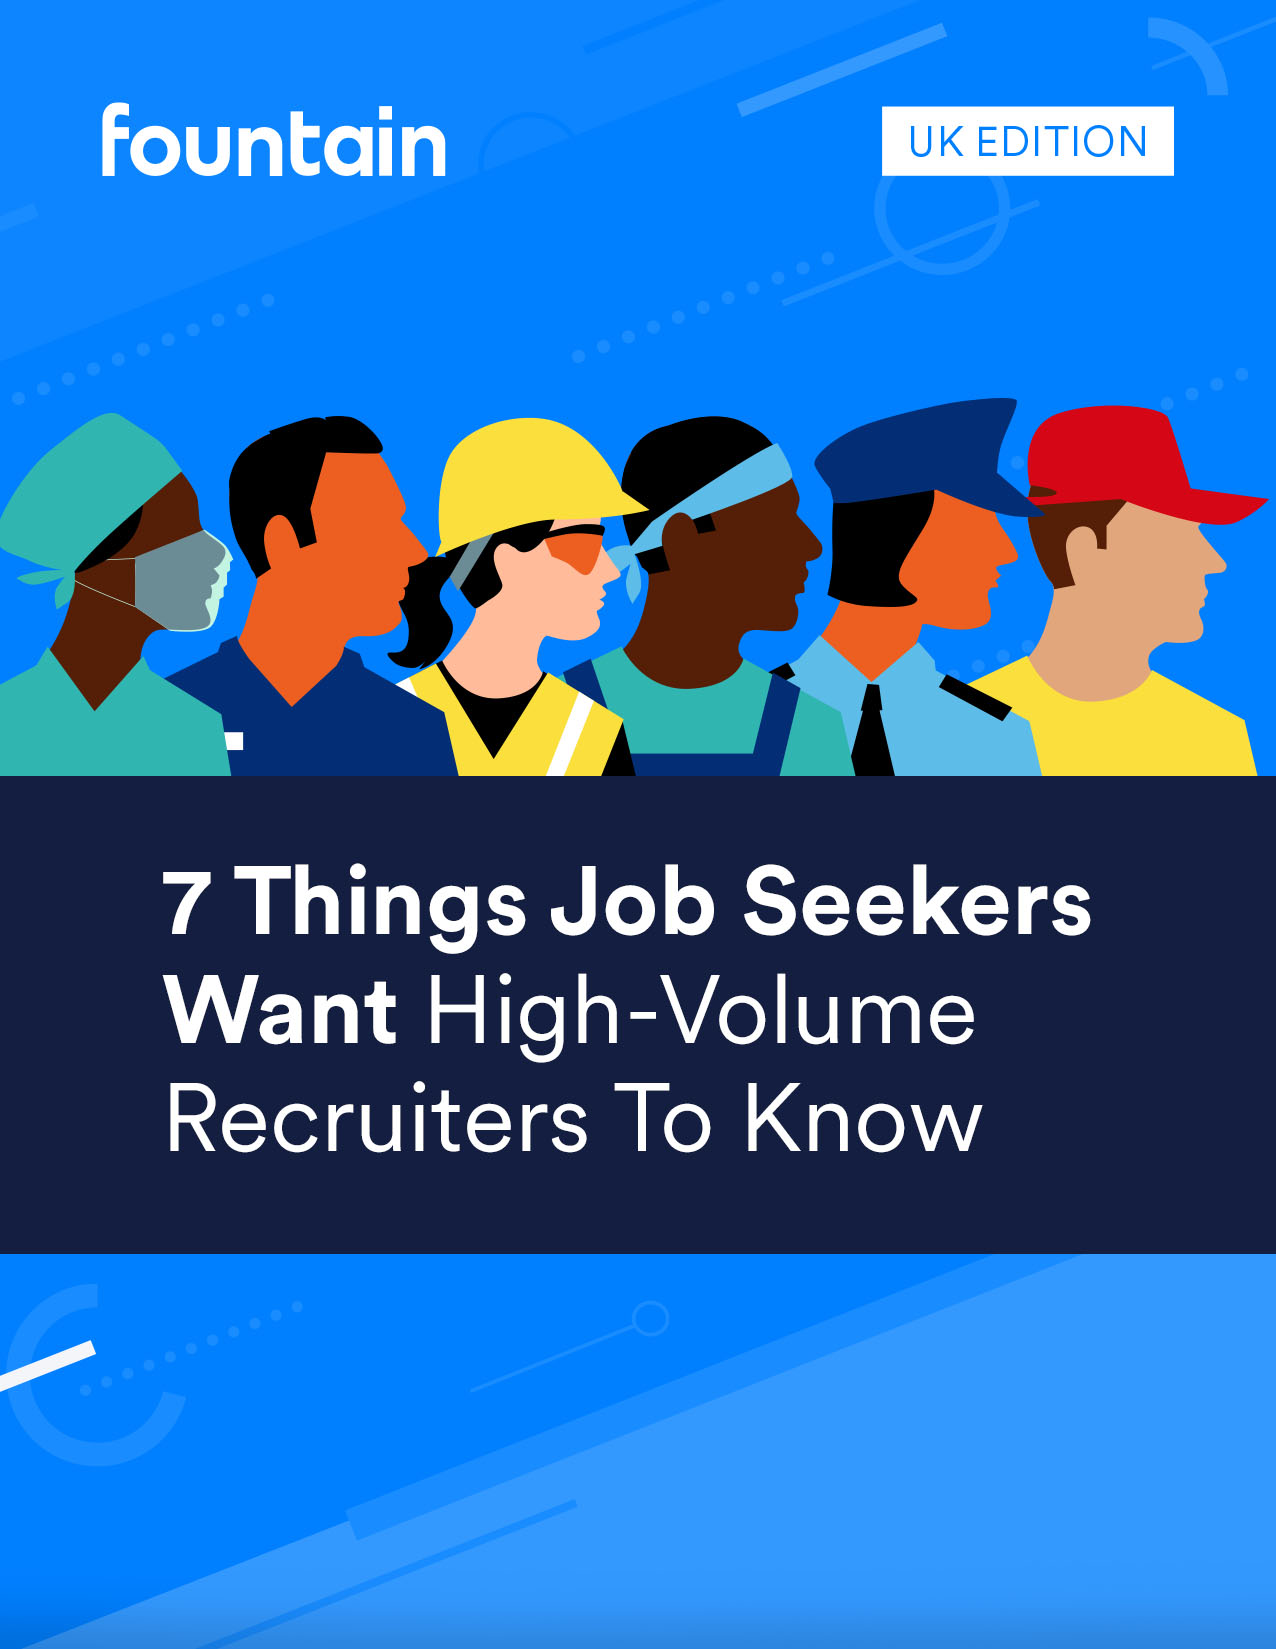 7 Things Job Seekers Want High Volume Hiring Managers To Know - UK Edition